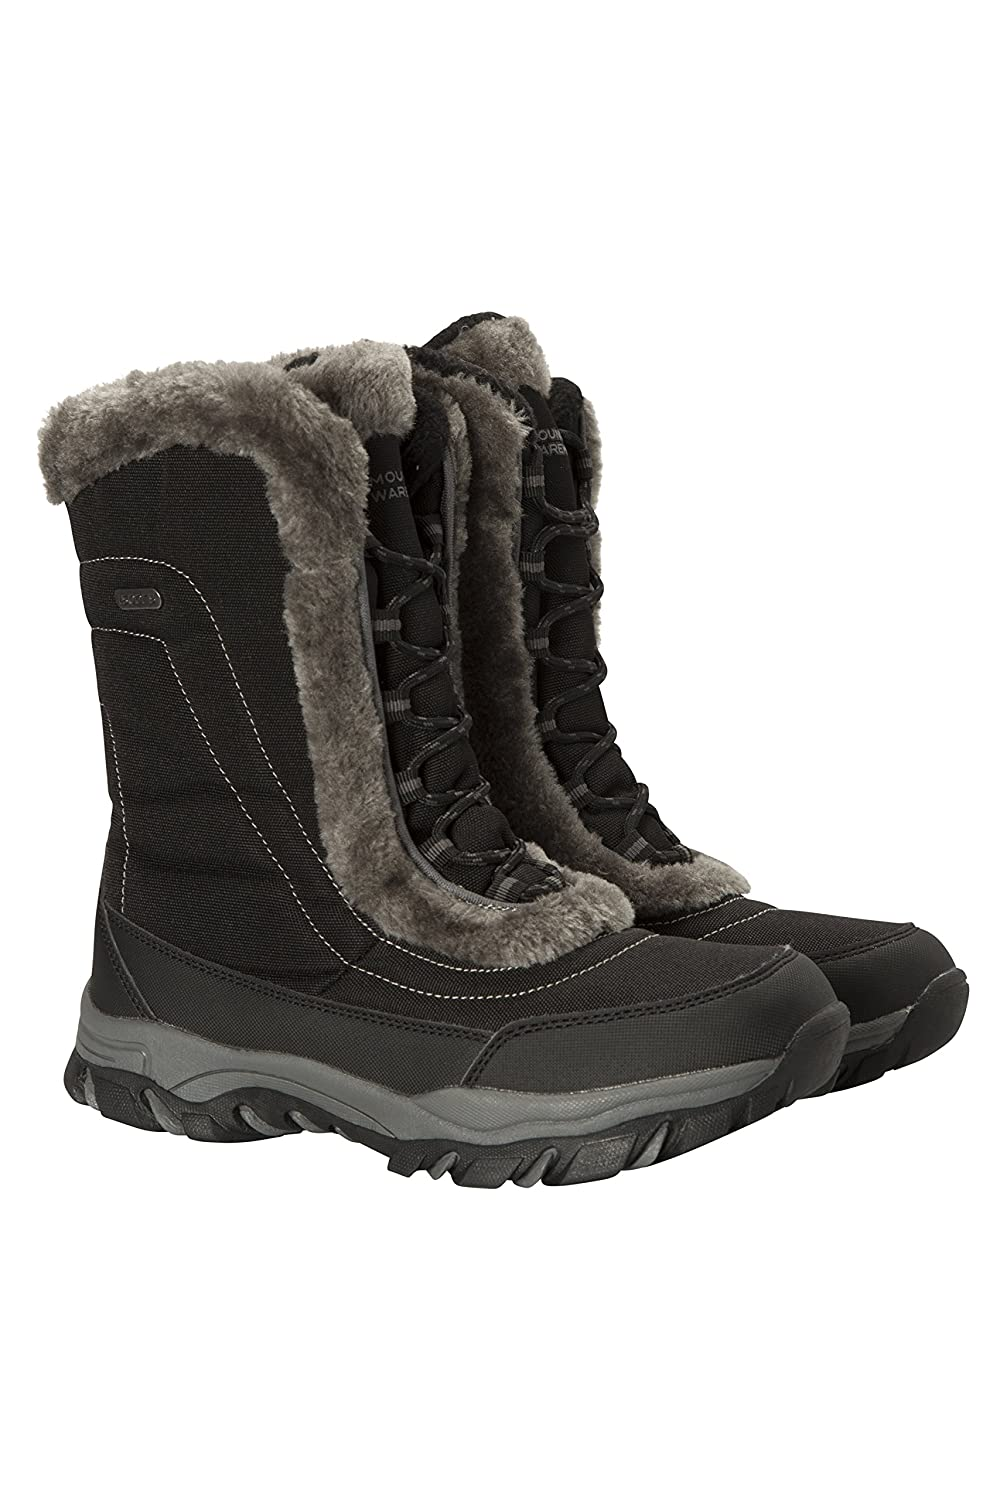 6ac354a62e8229 Mountain Warehouse Ohio Womens Snow Boots - Snowproof Ladies Winter Shoes,  Textile Upper, Durable & Breathable Isotherm Lining & Rubber Outsole - for  fit ...